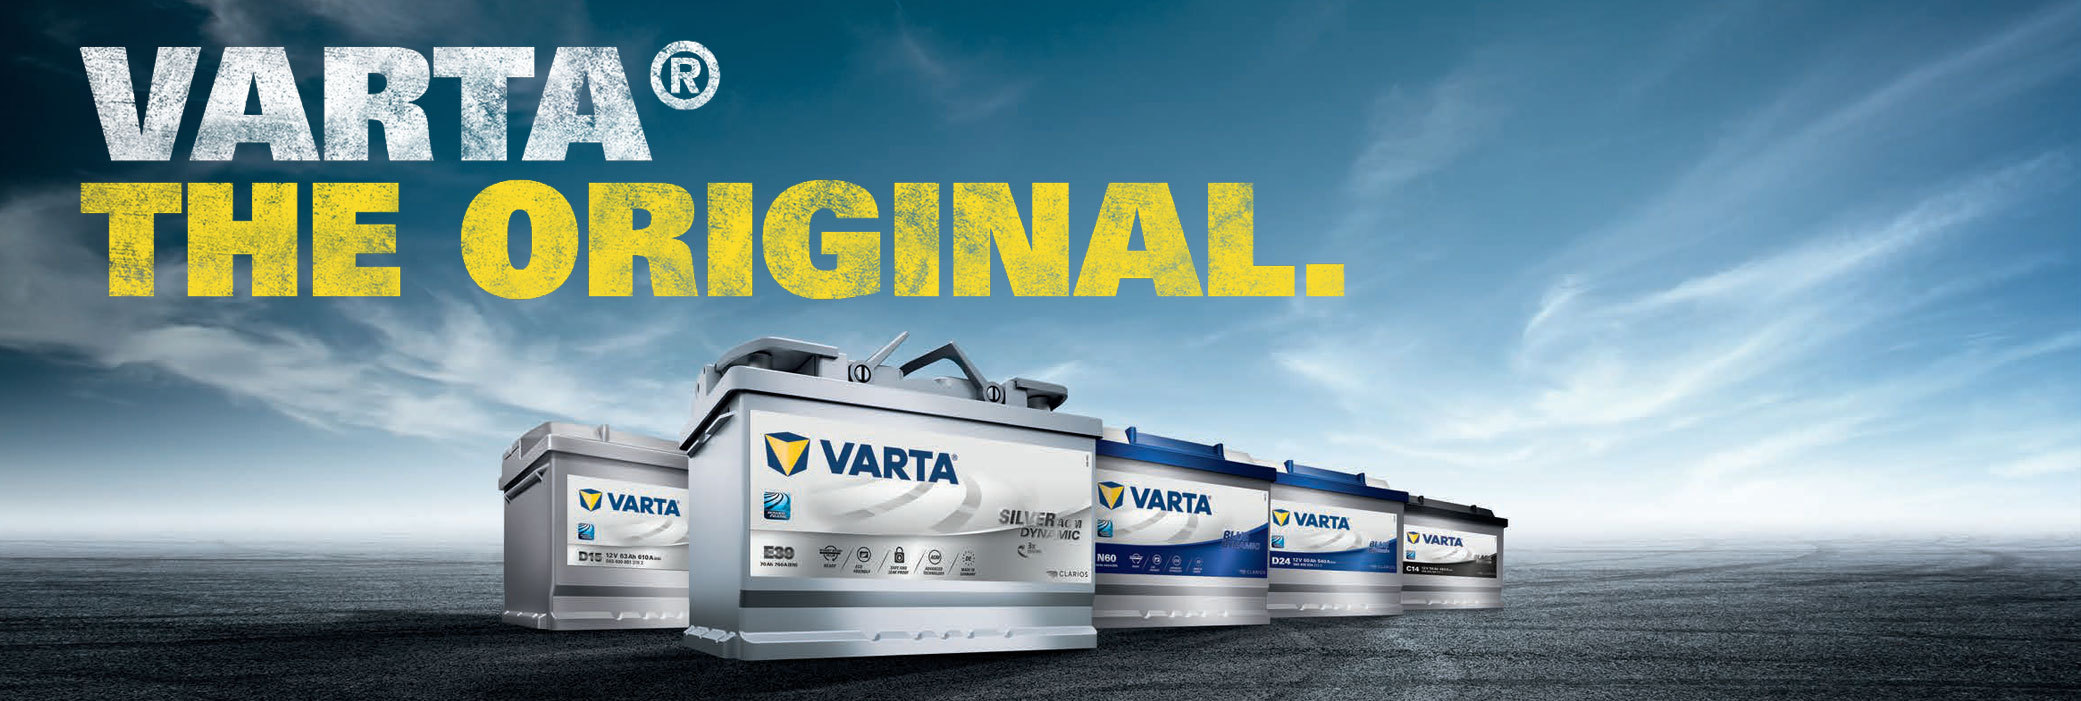 VARTA® THE ORIGINAL